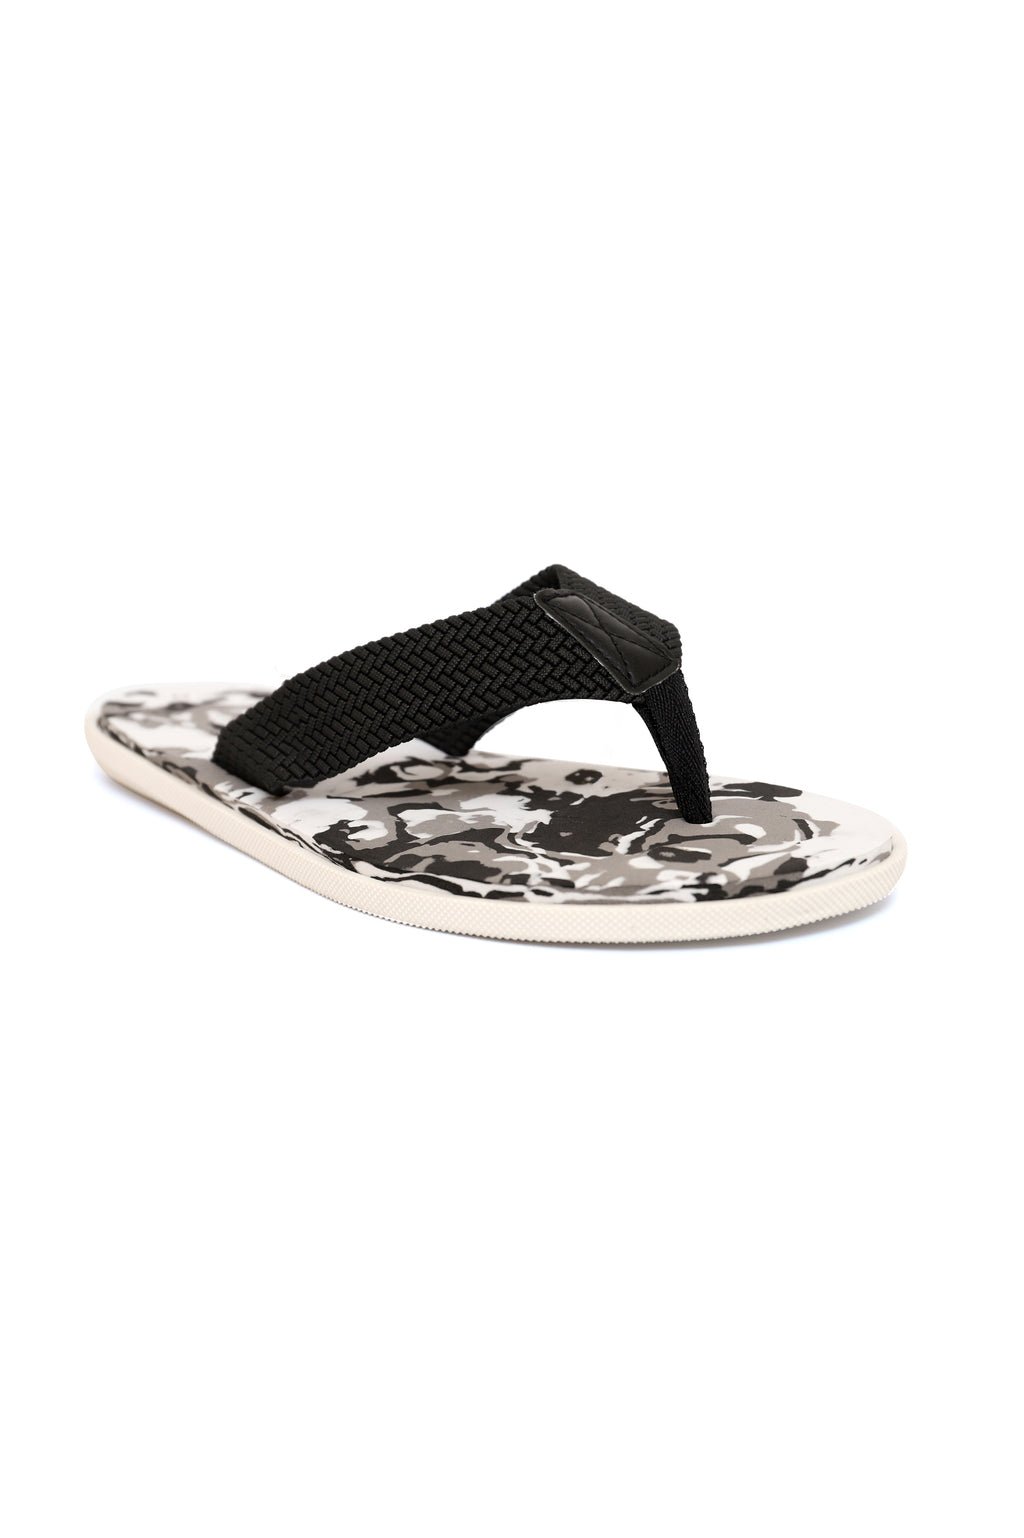 CAMO SLIPPERS-BLACK/WHITE